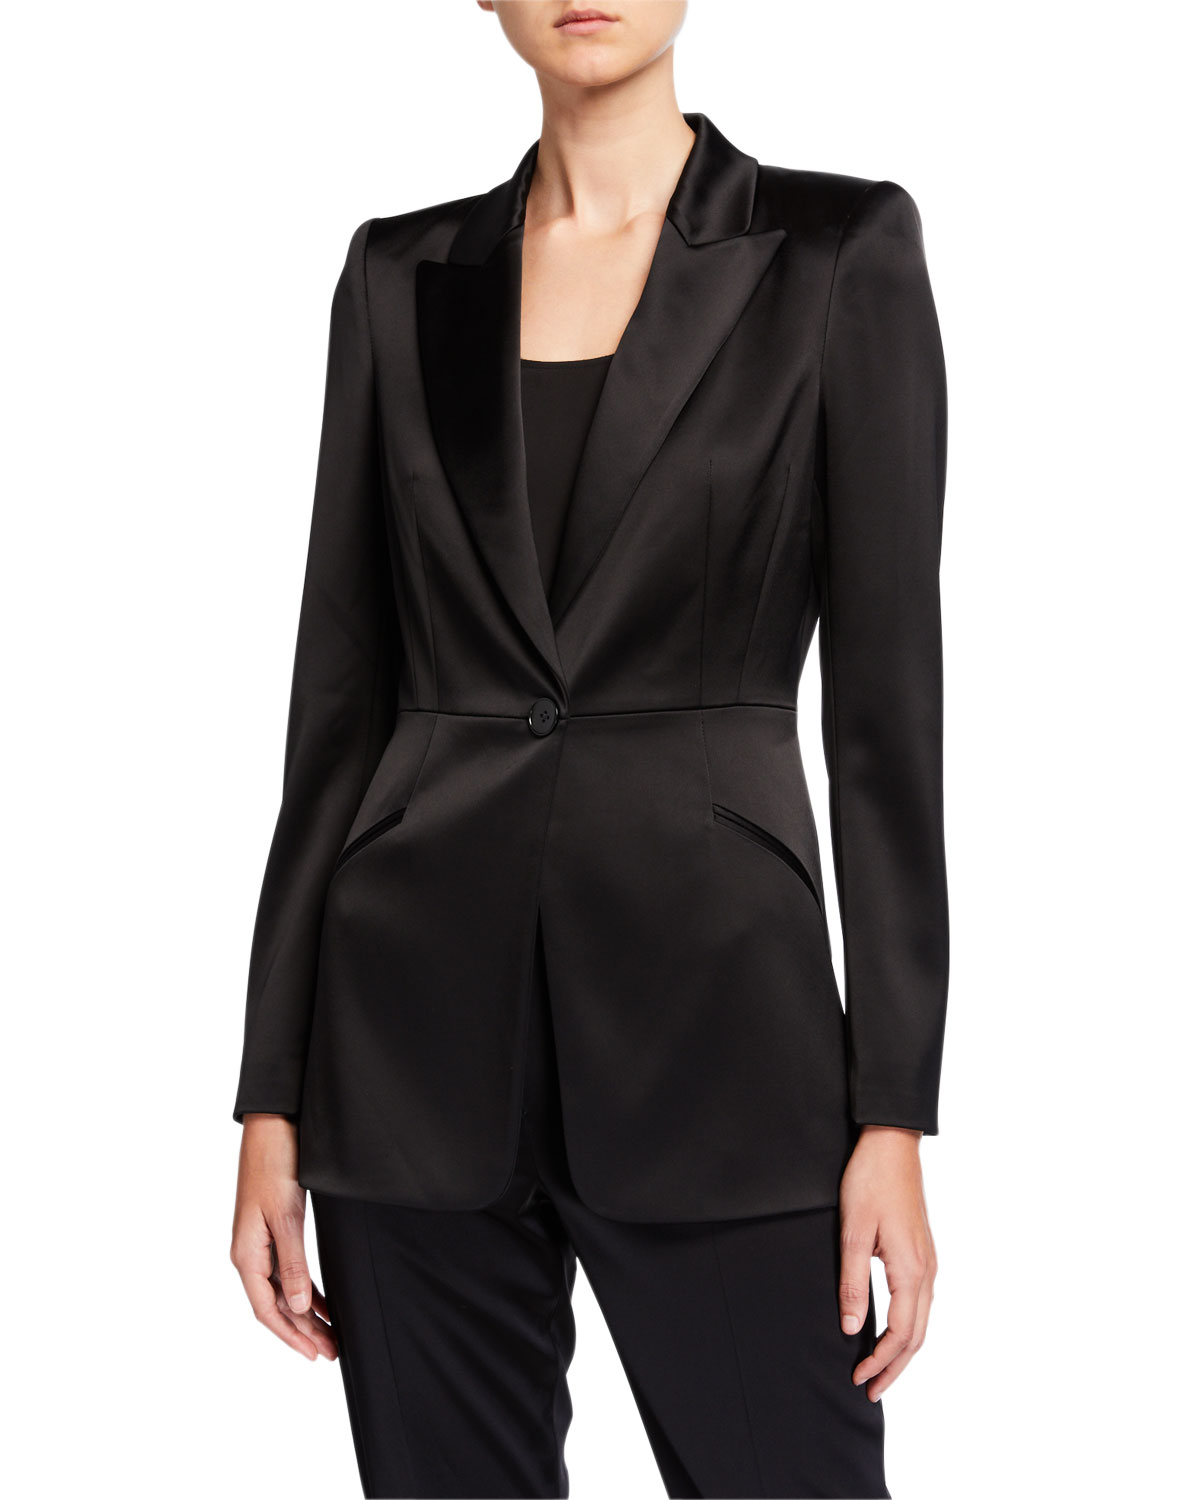 Elie Tahari Jackets MADISON SATIN JACKET